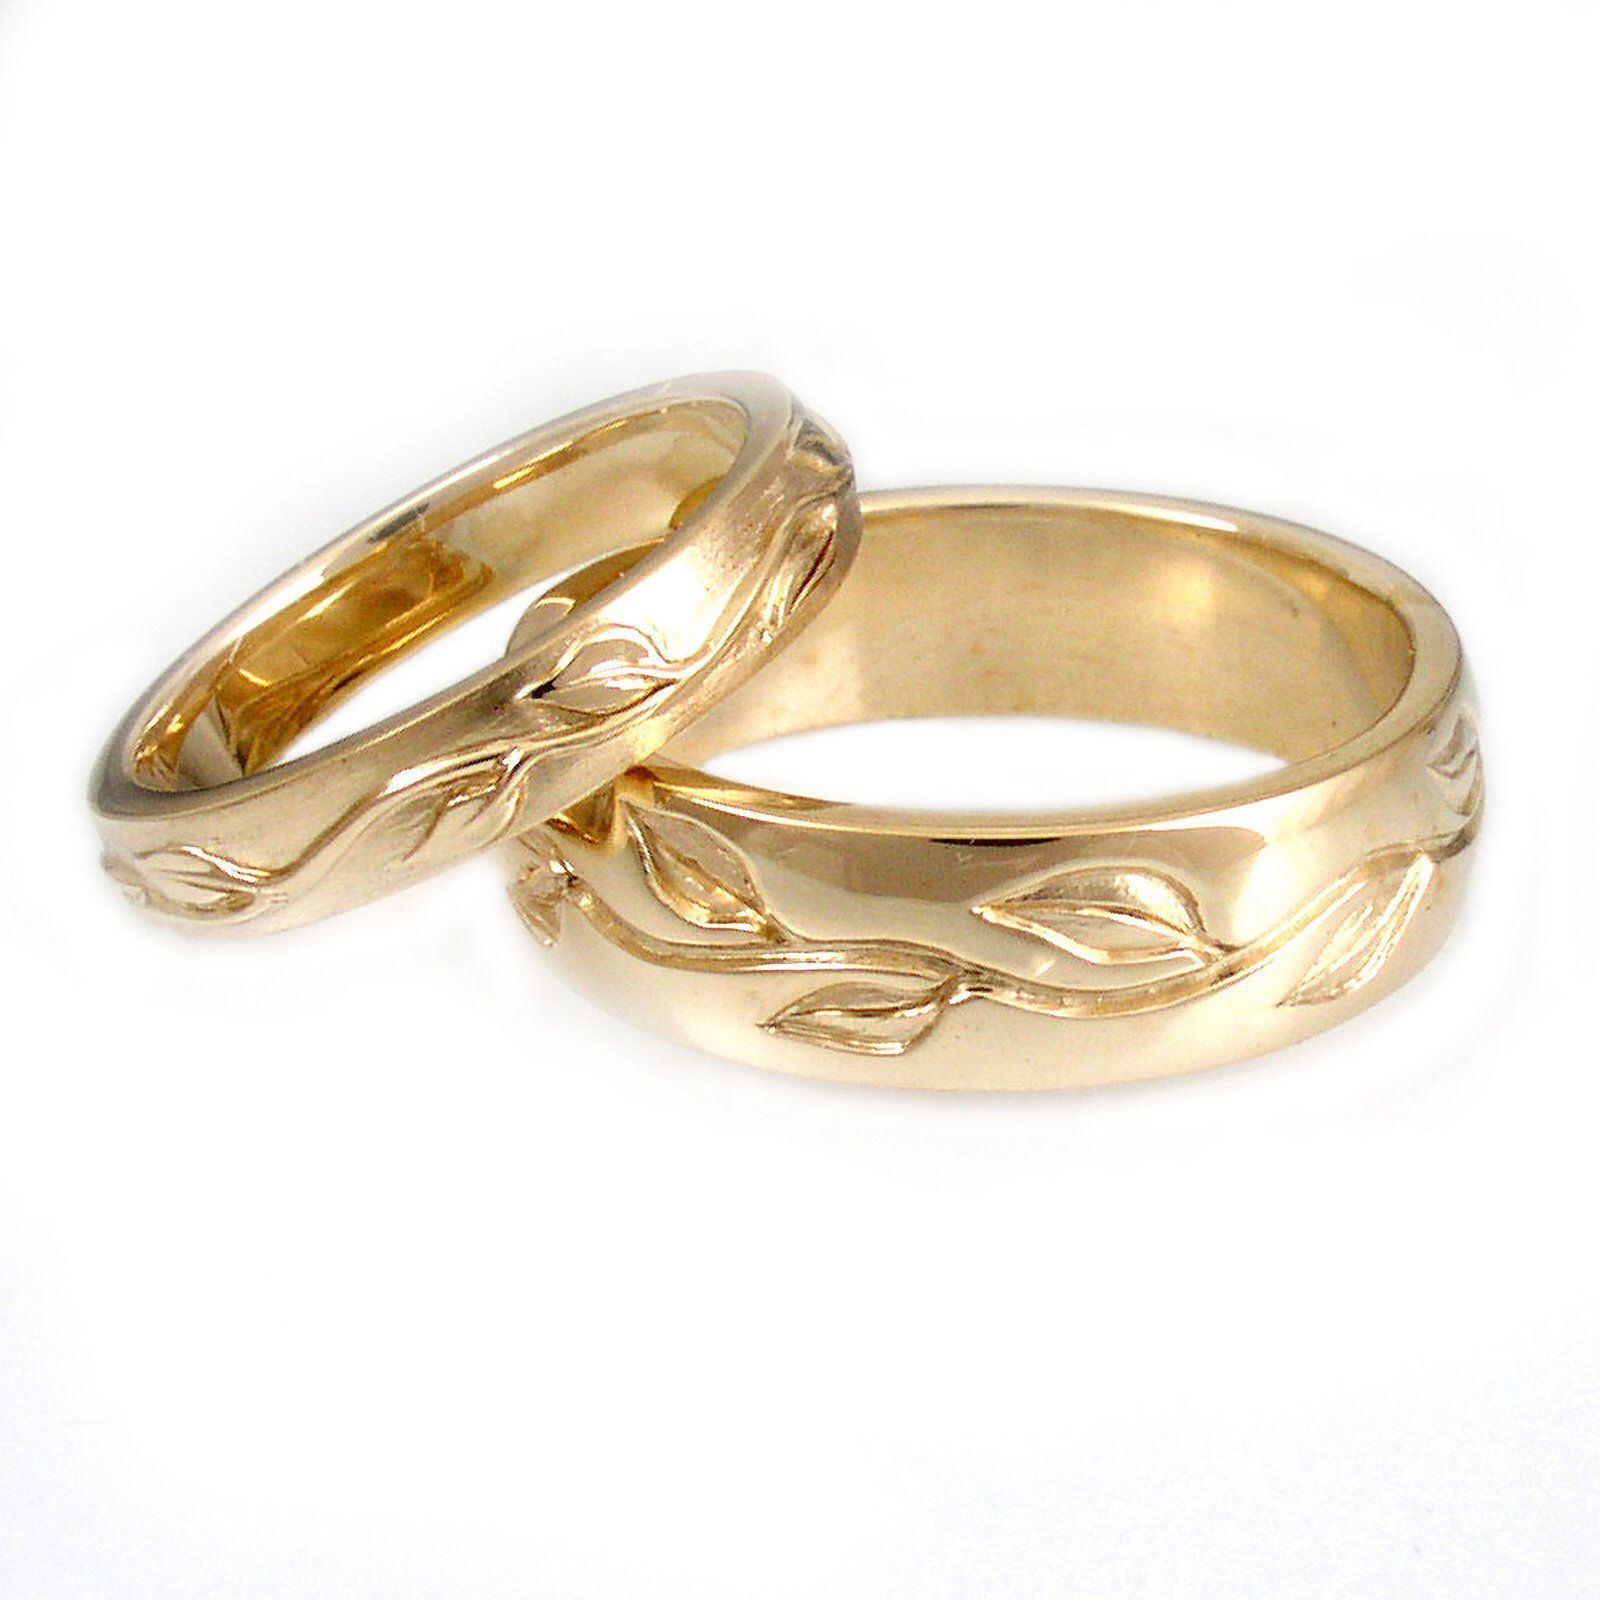 engraved gold wedding bands wedding ideas